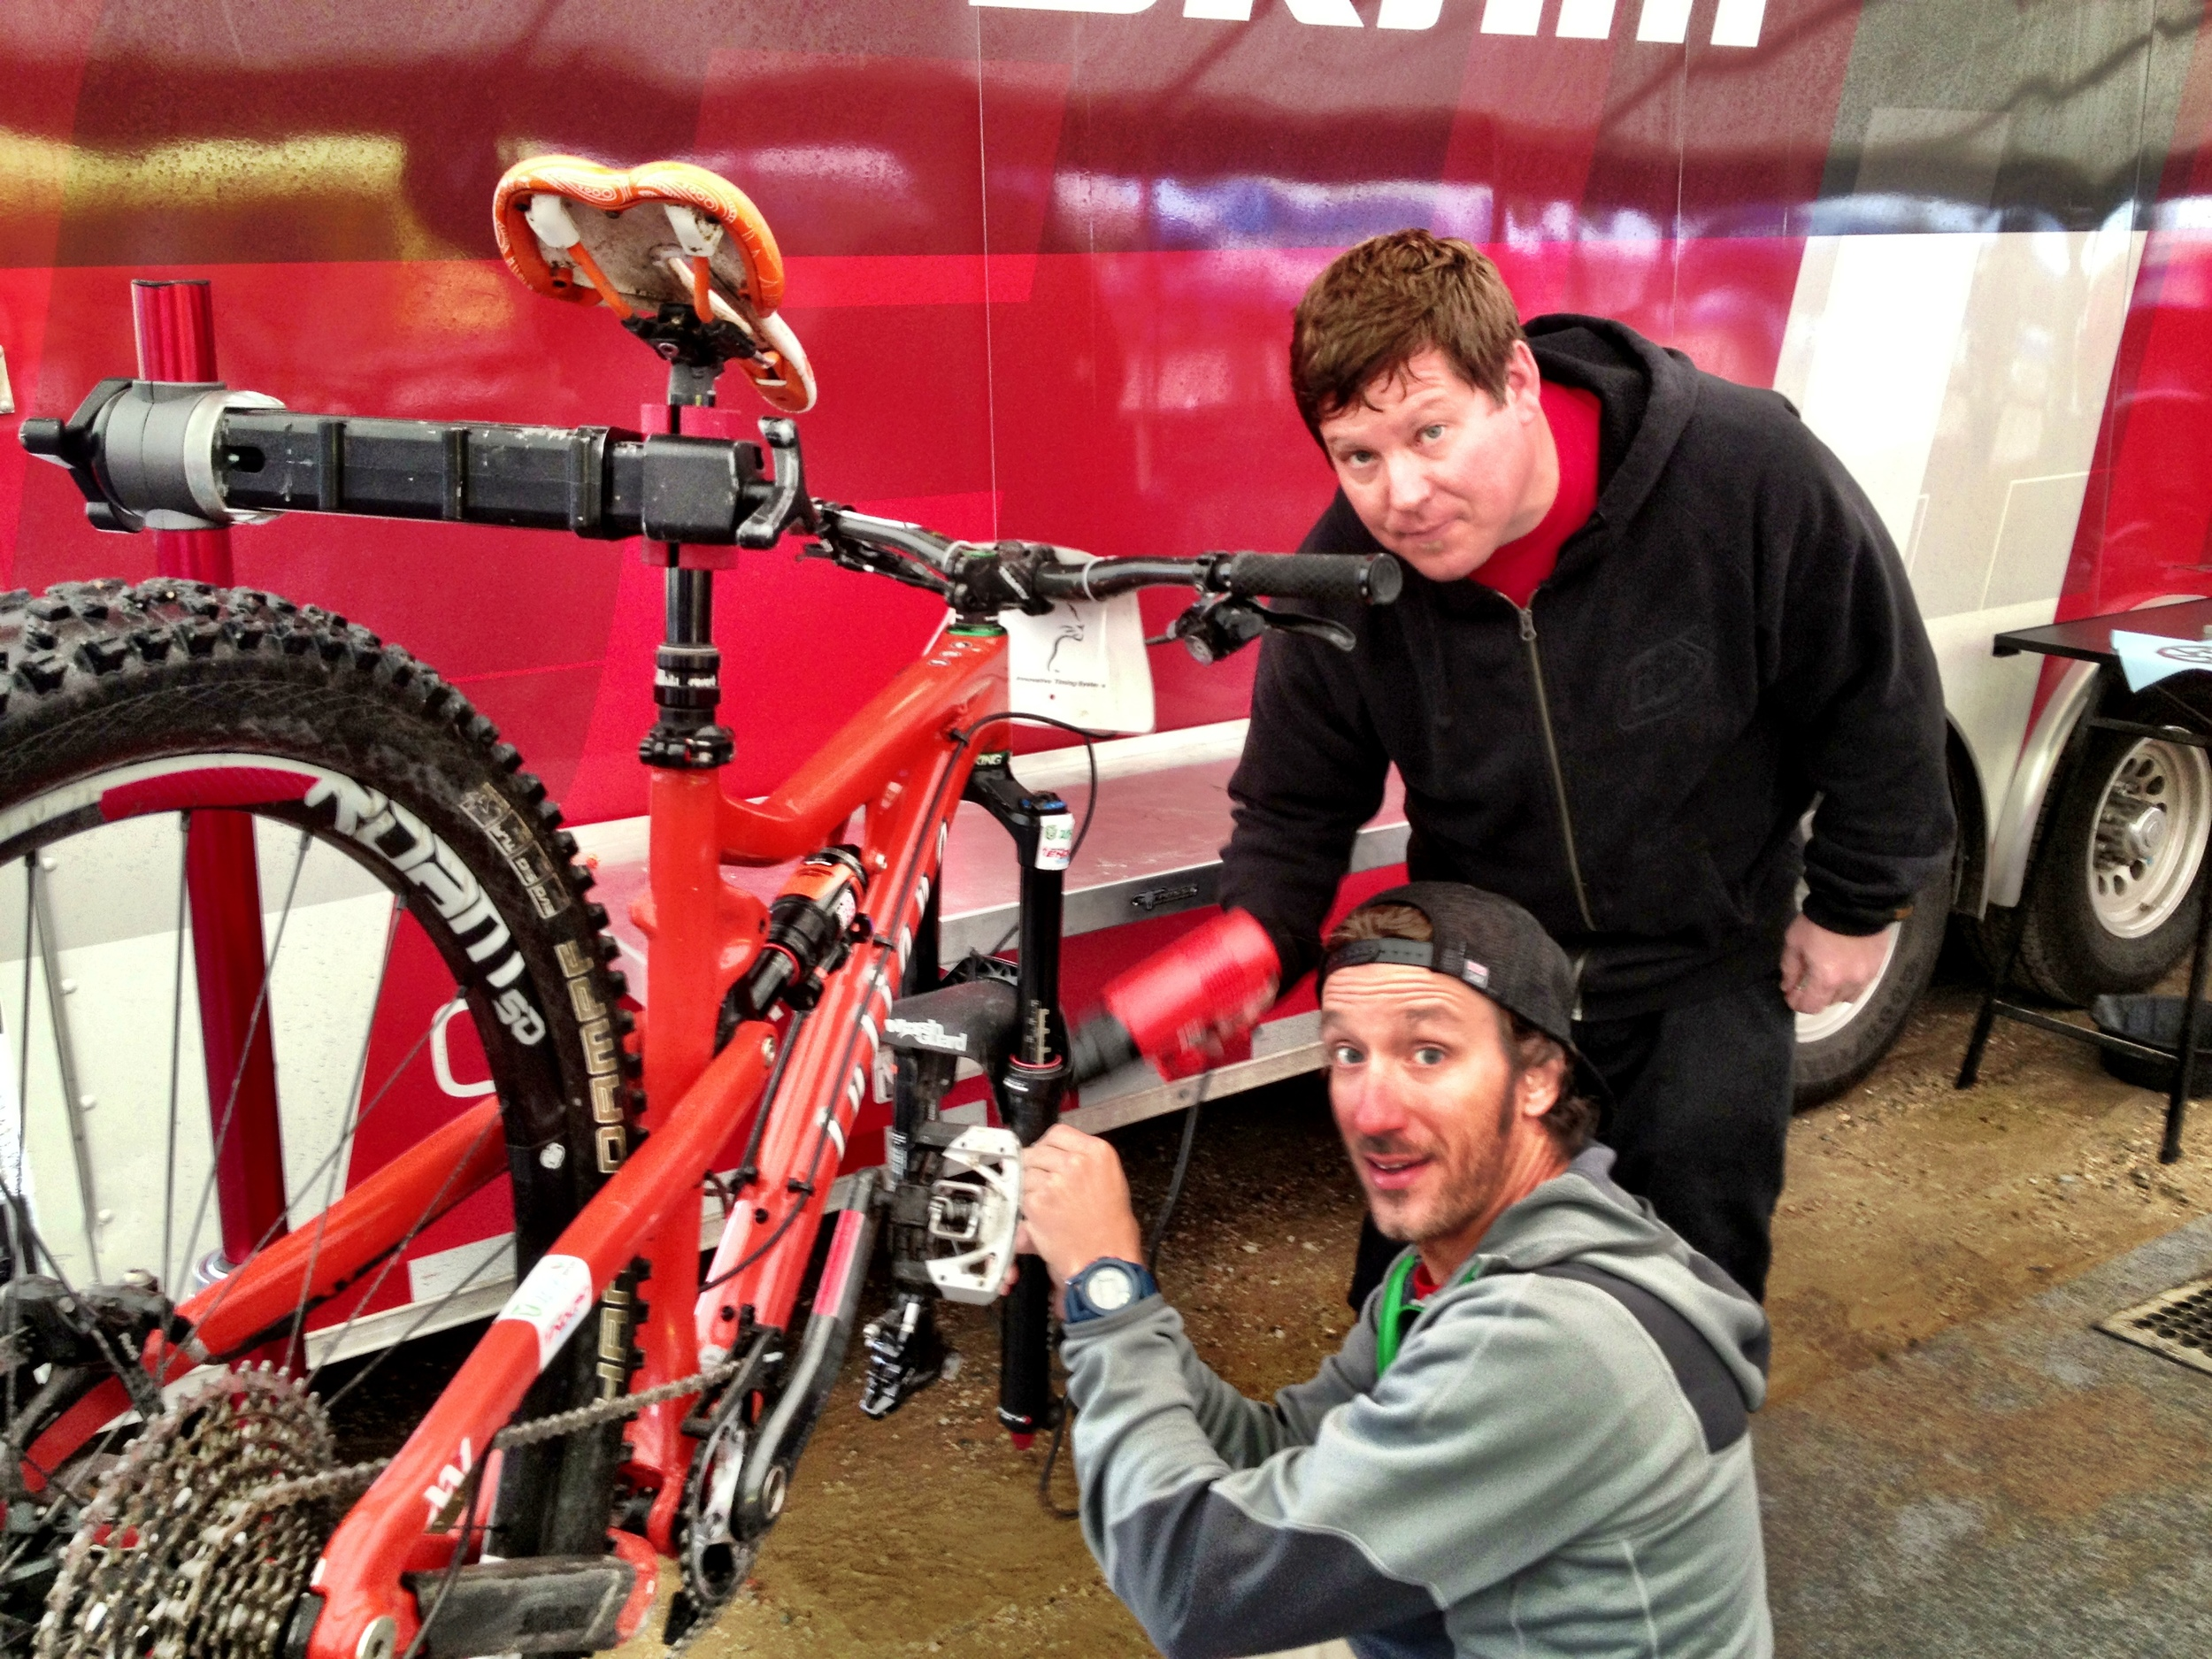 Jon C & John D having fun with the heat gun & treating me bike with some matching decals.